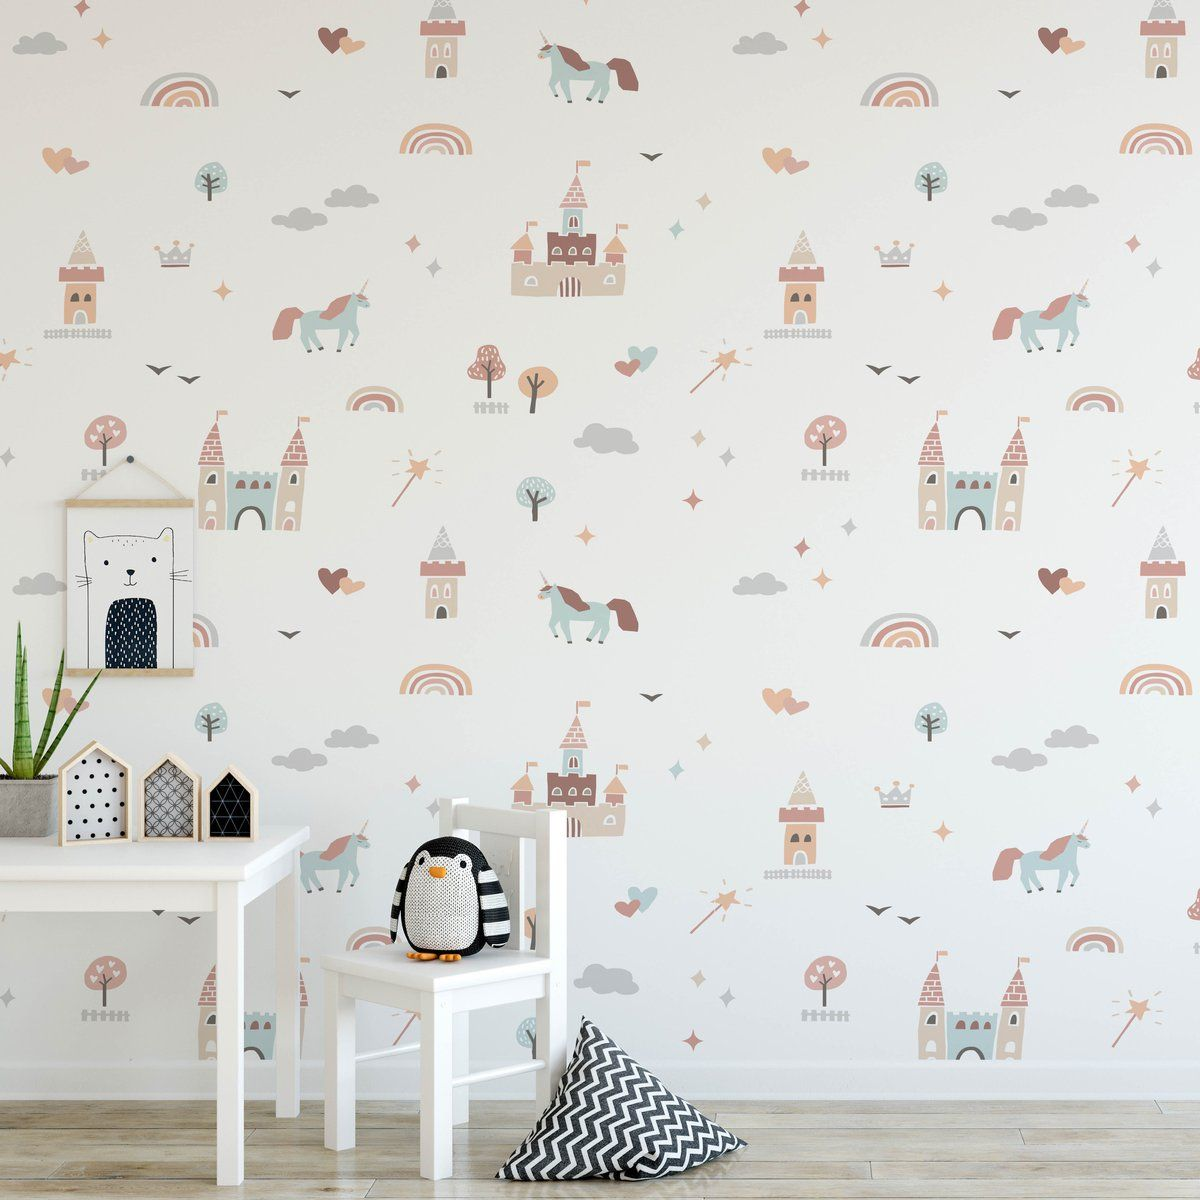 Removable And Damage Free Wallpaper Is The Answer To Your Household Desires Our Wallpaper Is A F Playroom Wallpaper Kids Bedroom Wallpaper Kids Room Wallpaper